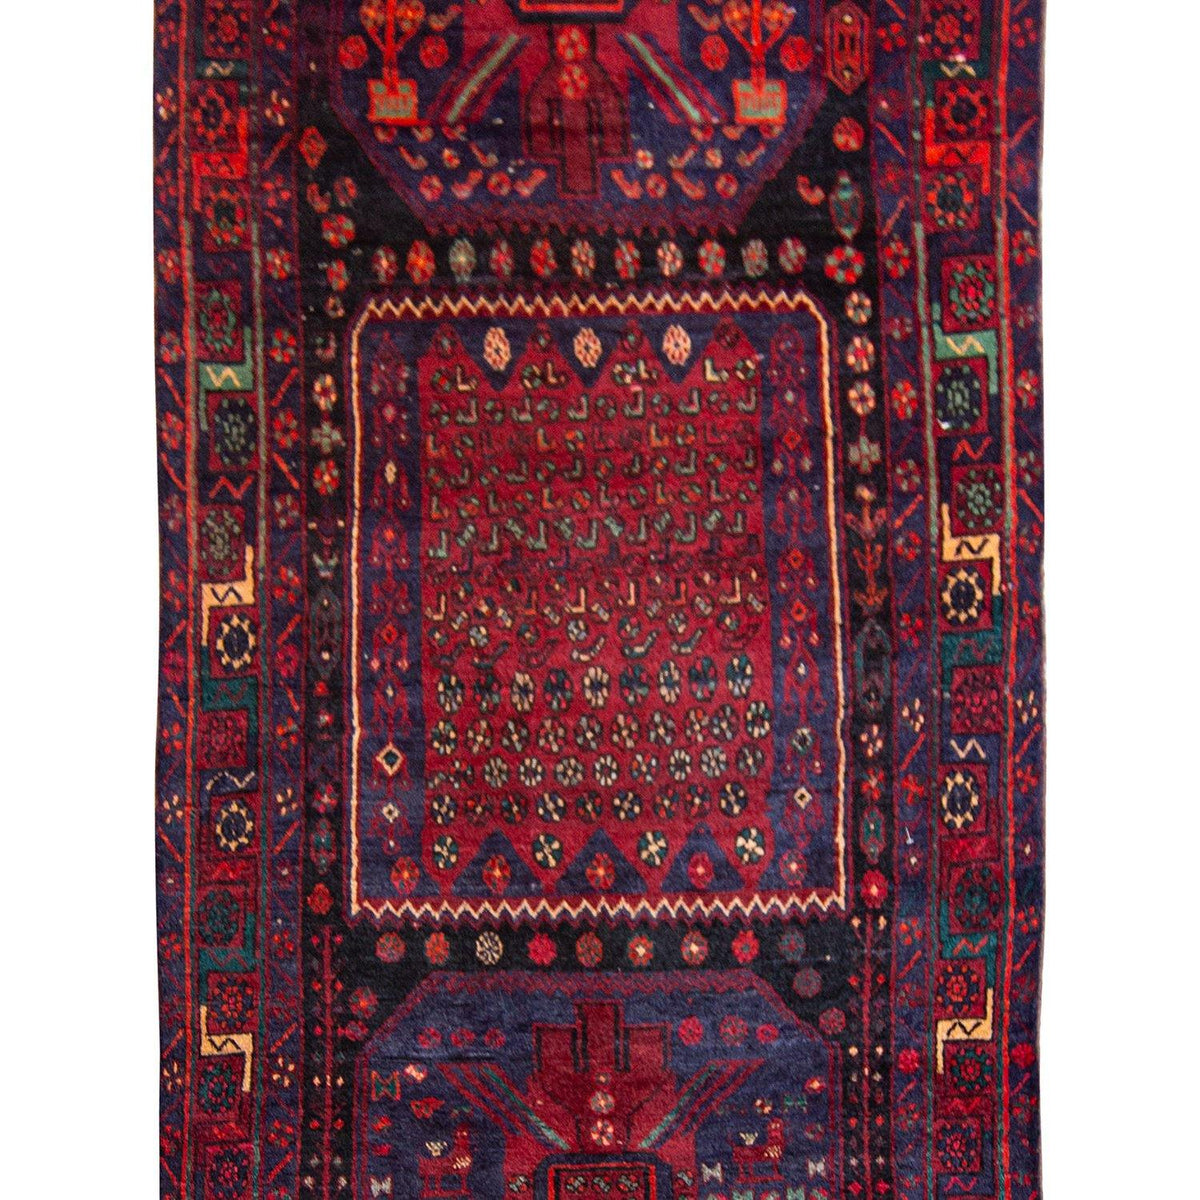 Find Hand-knotted Wool Tribal Kolyai Runner 129cm x 350cm Persian-Rug | House-of-Haghi | NewMarket | Auckland | NZ | Handmade Persian Rugs | Hand Knotted Persian Rugs